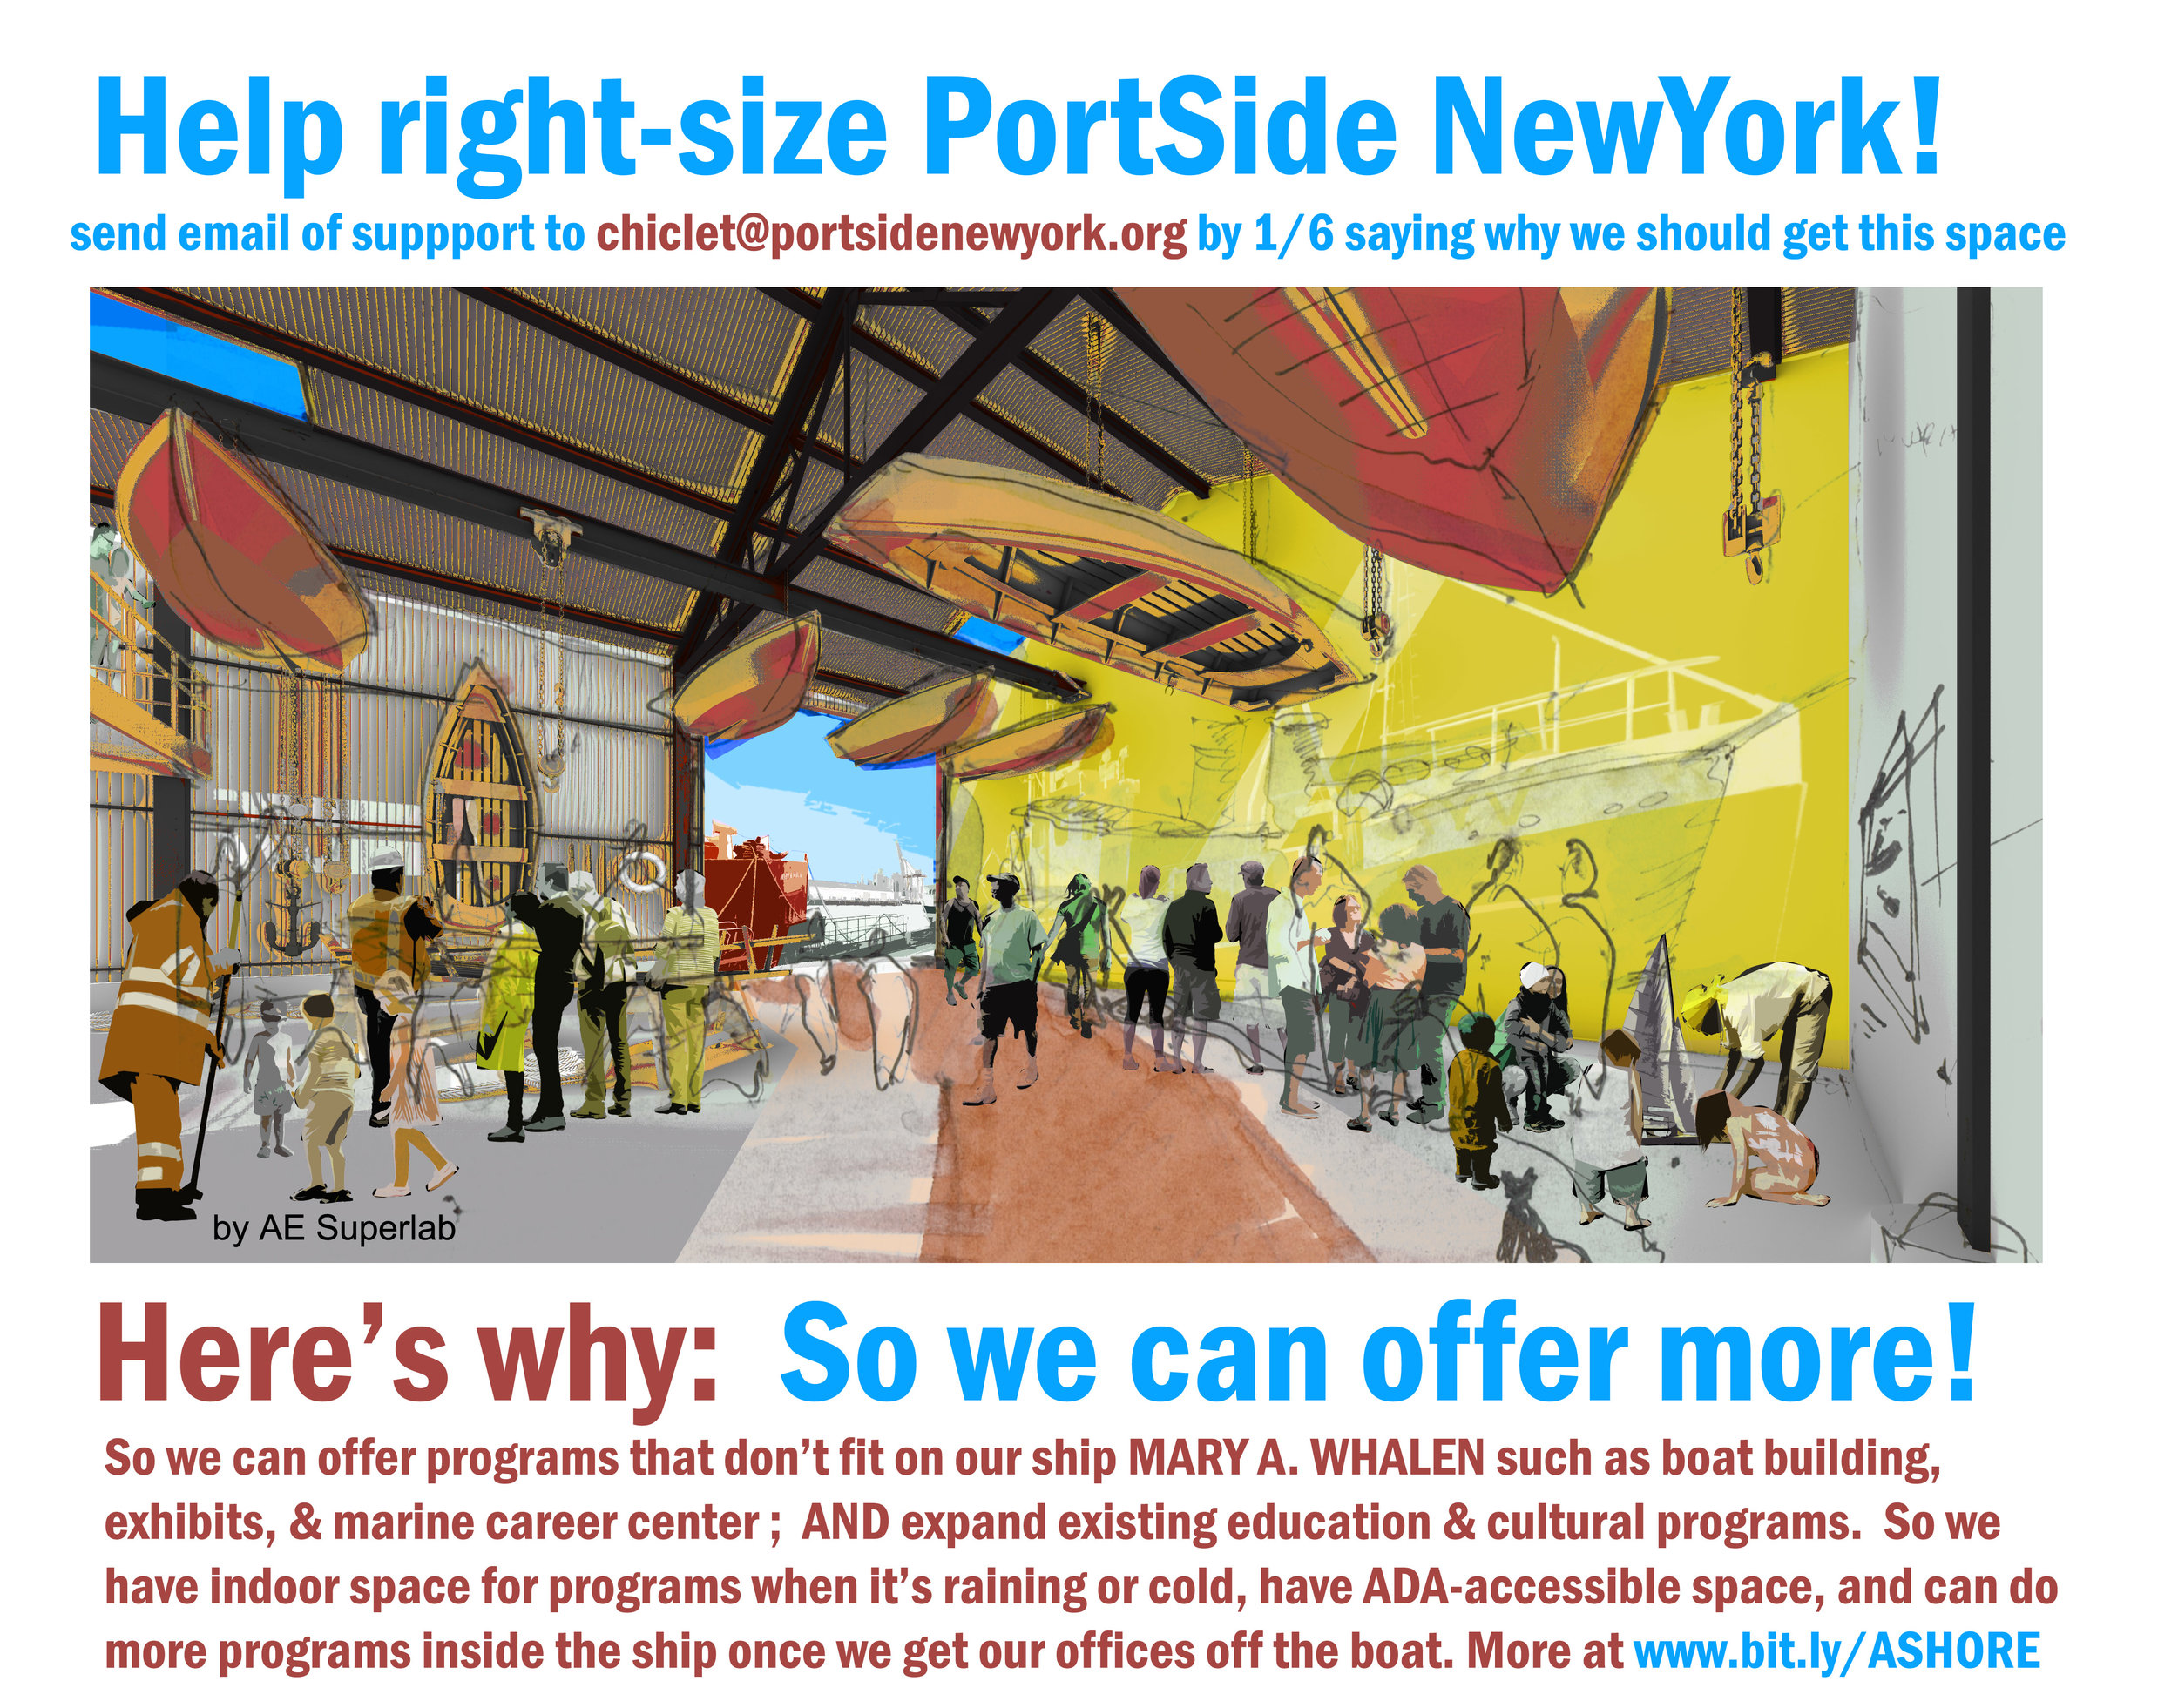 2018-12 PortSide AE Superlab flyer send email of support 2.jpg